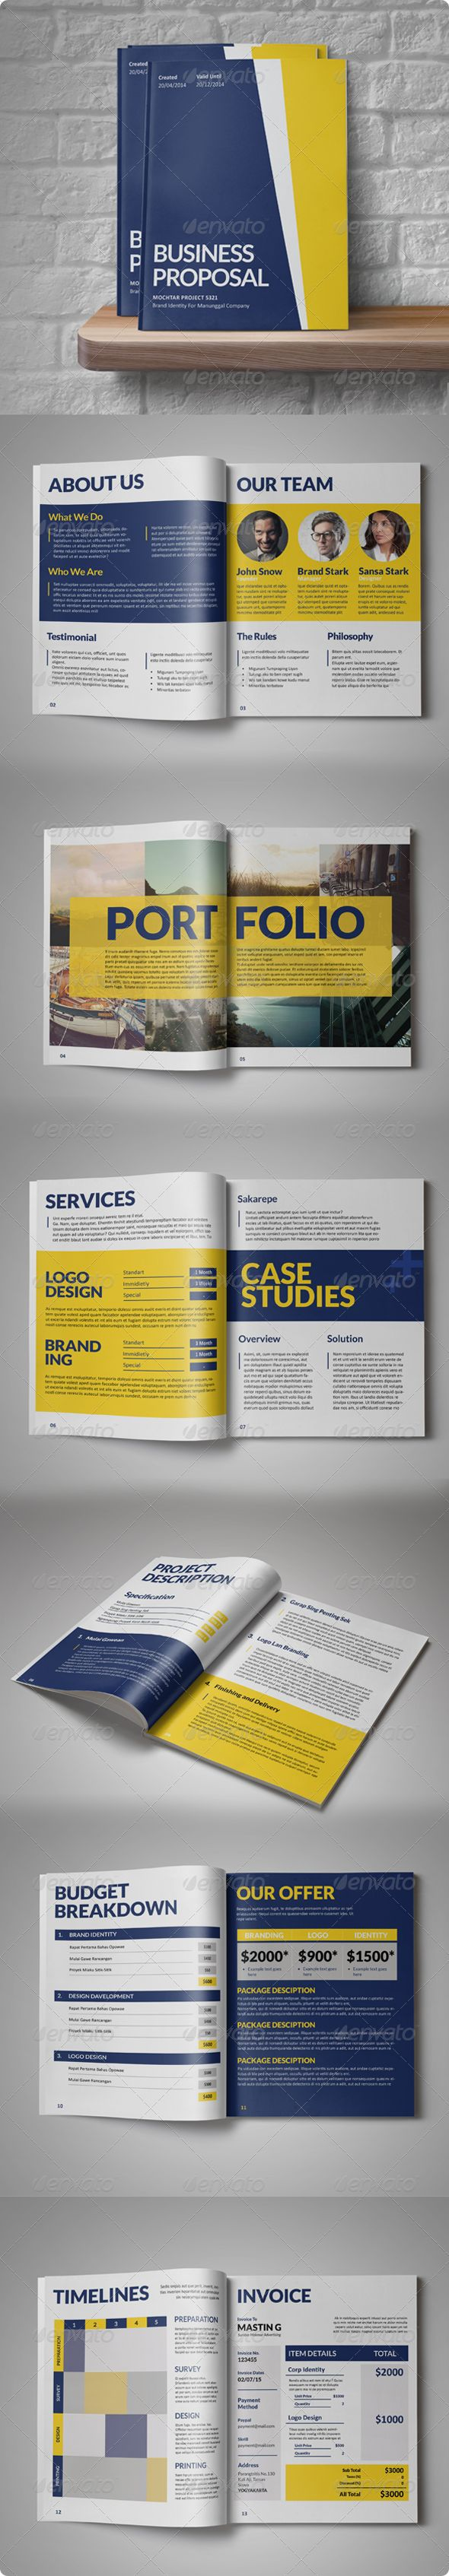 Painah Business Proposal | GraphicRiver